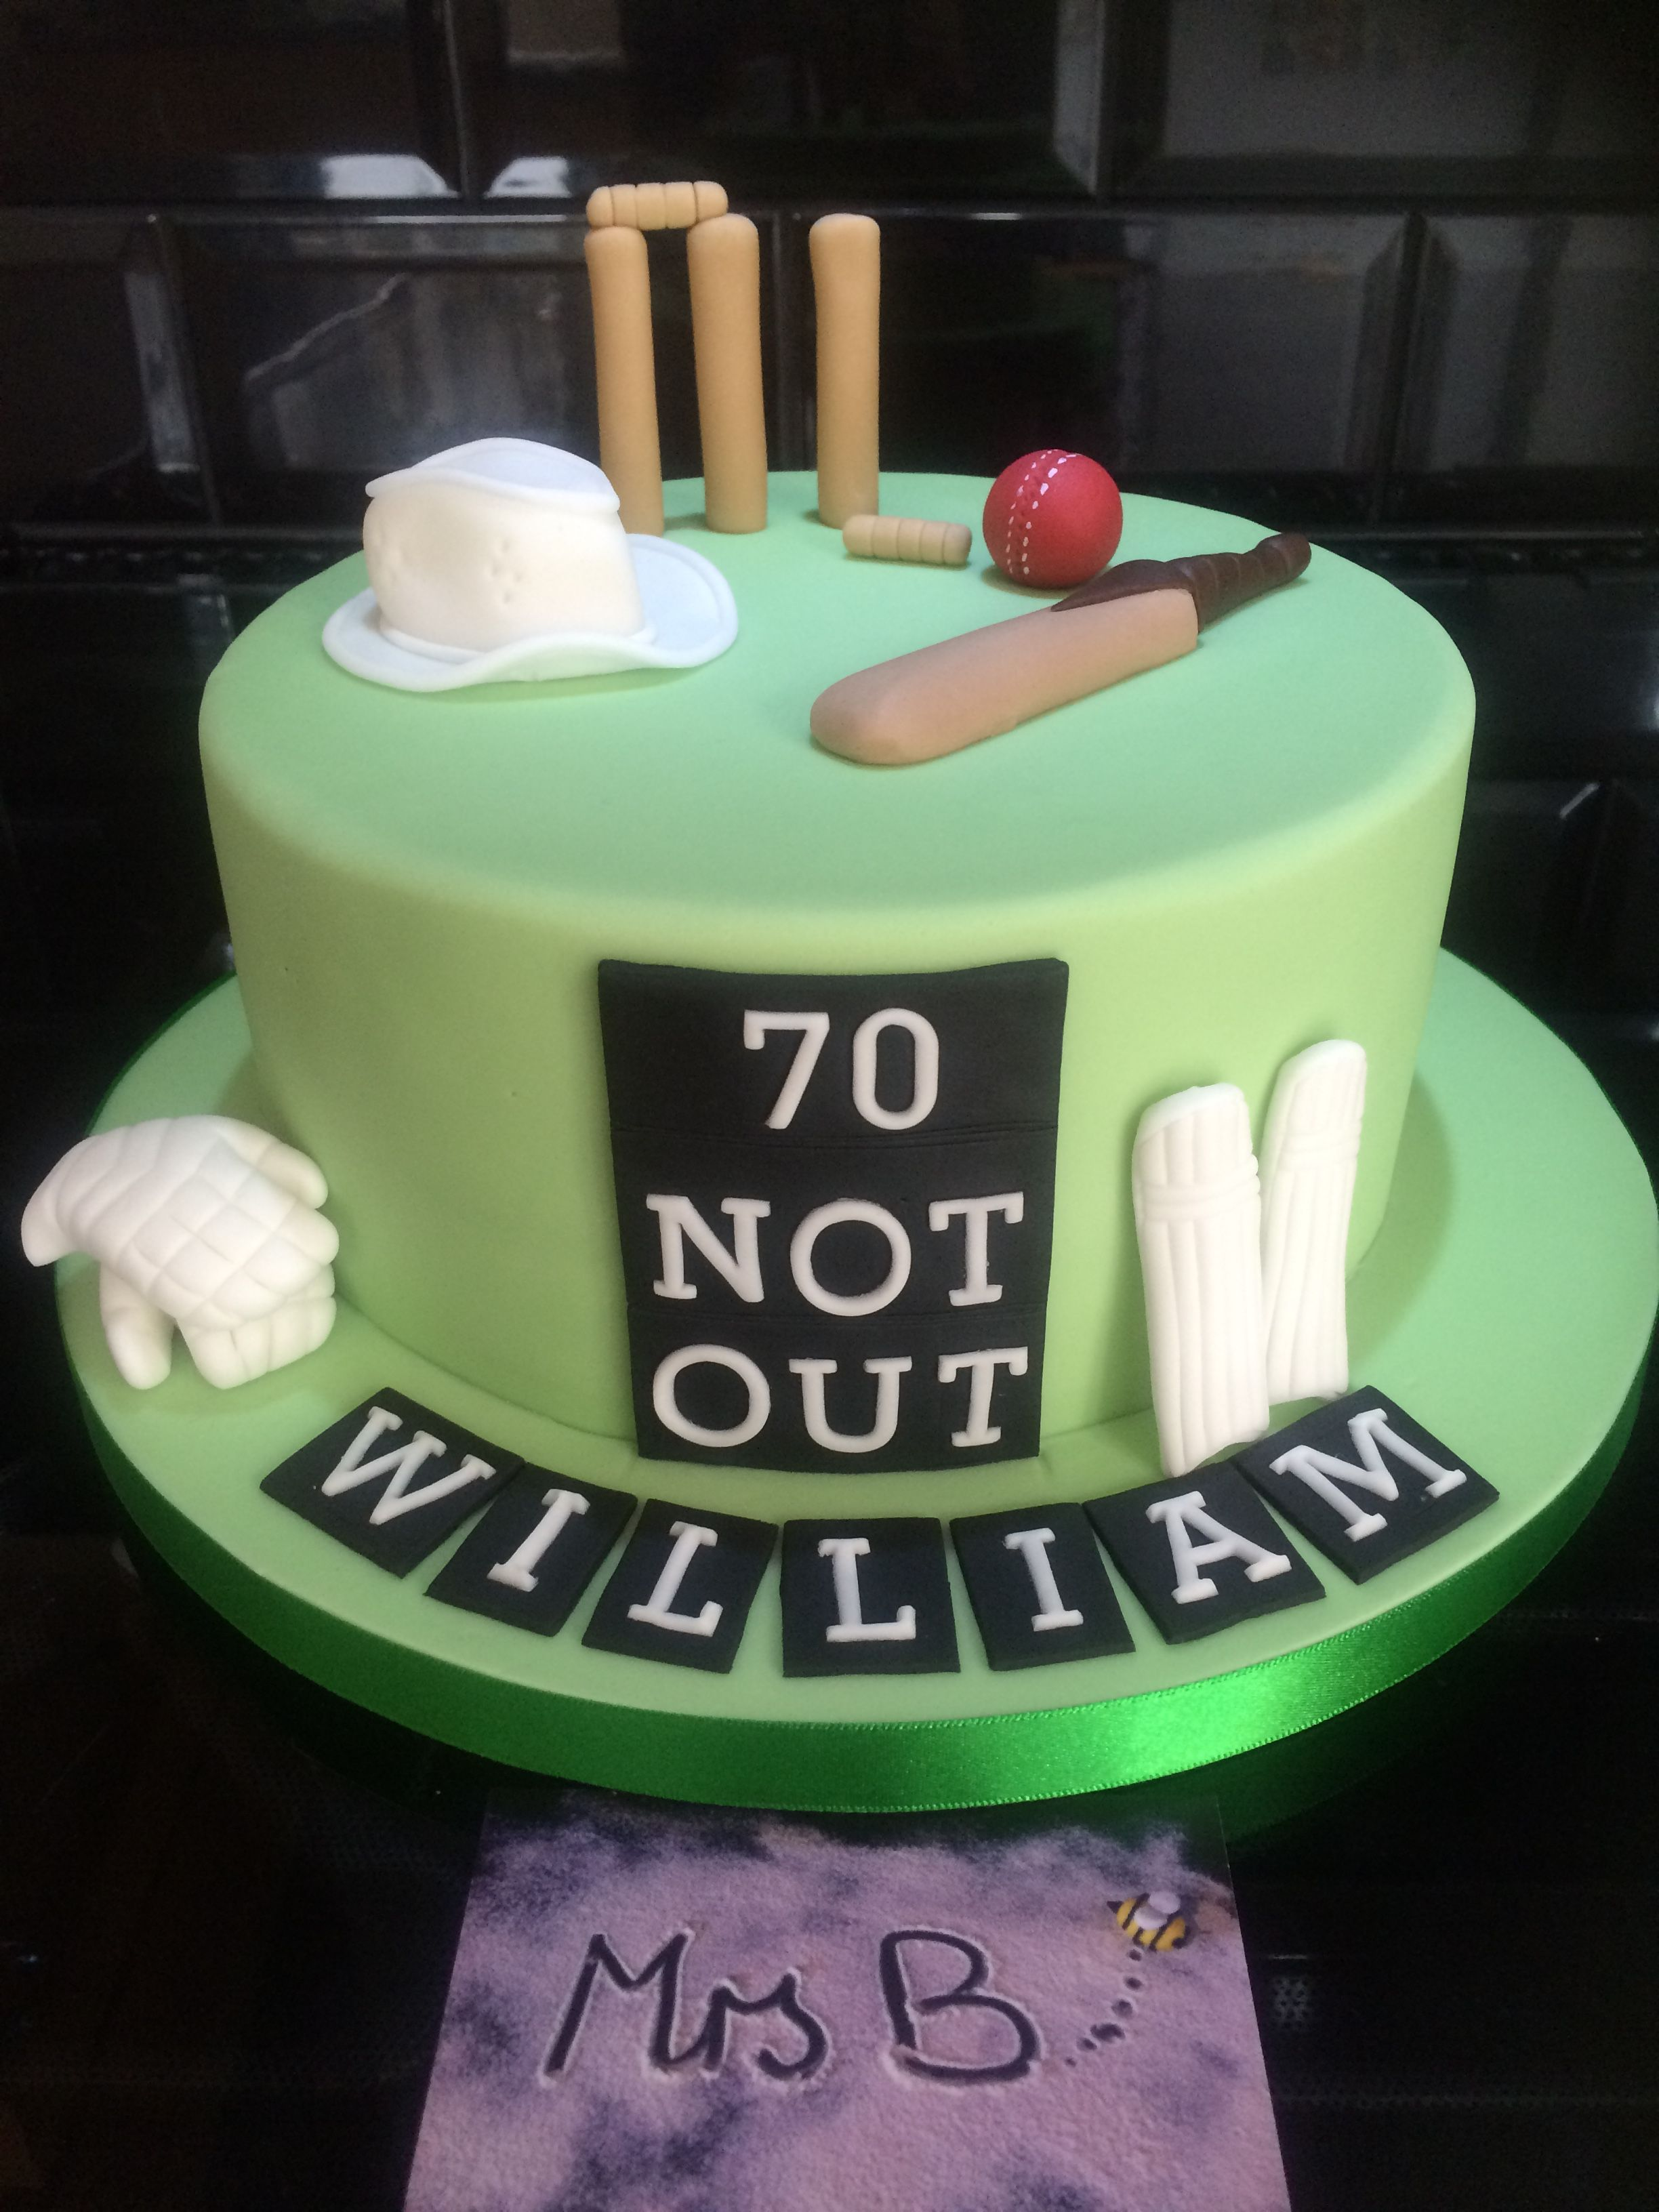 Cricket Themed Birthday Cake For 70 Year Old Entirely Handcrafted Edible 2016 By